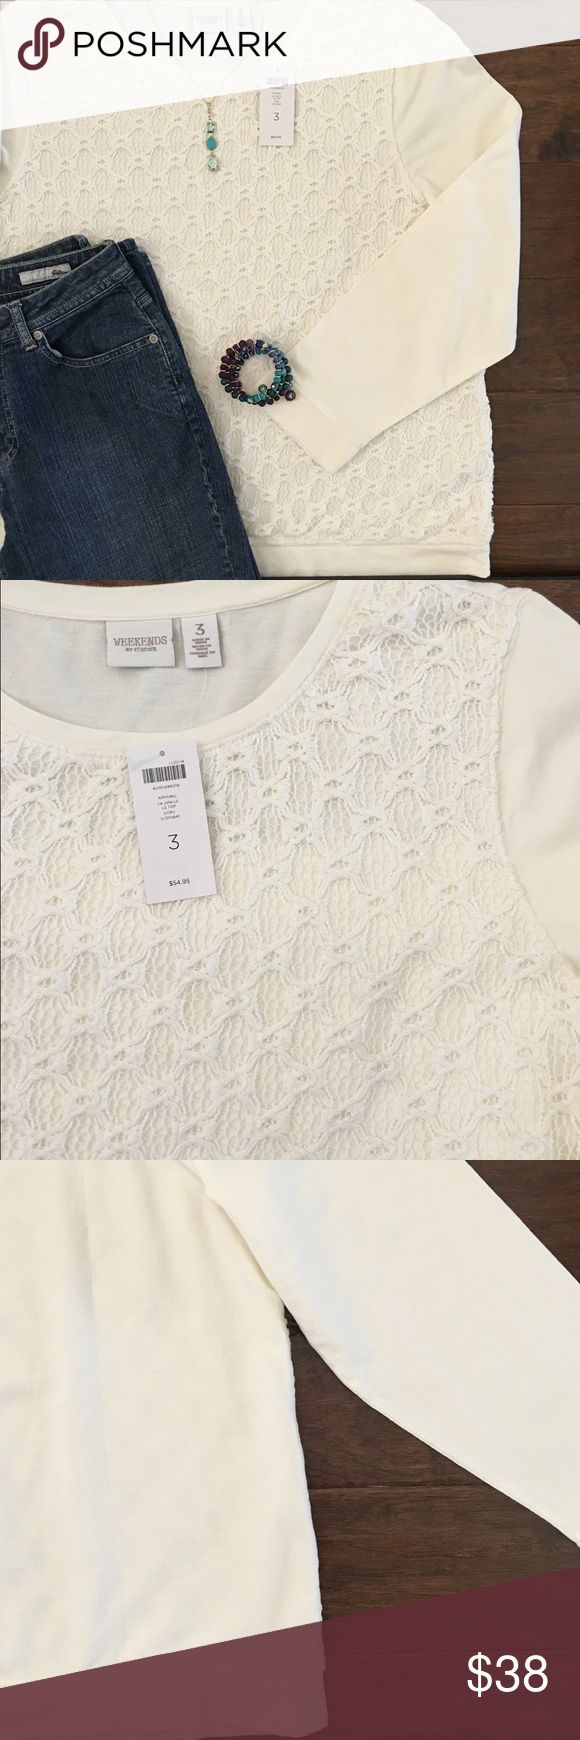 "Chicos Front Lace Overlay Sweatshirt Sz 3 / XL NWT Weekends by Chicos cream lace overlay top. Comfy like a sweatshirt but kicked up a notch with a feminine cotton lace overlay.   27"" long 22"" across (underarm to underarm) 100% Cotton Chico's Tops Sweatshirts & Hoodies"